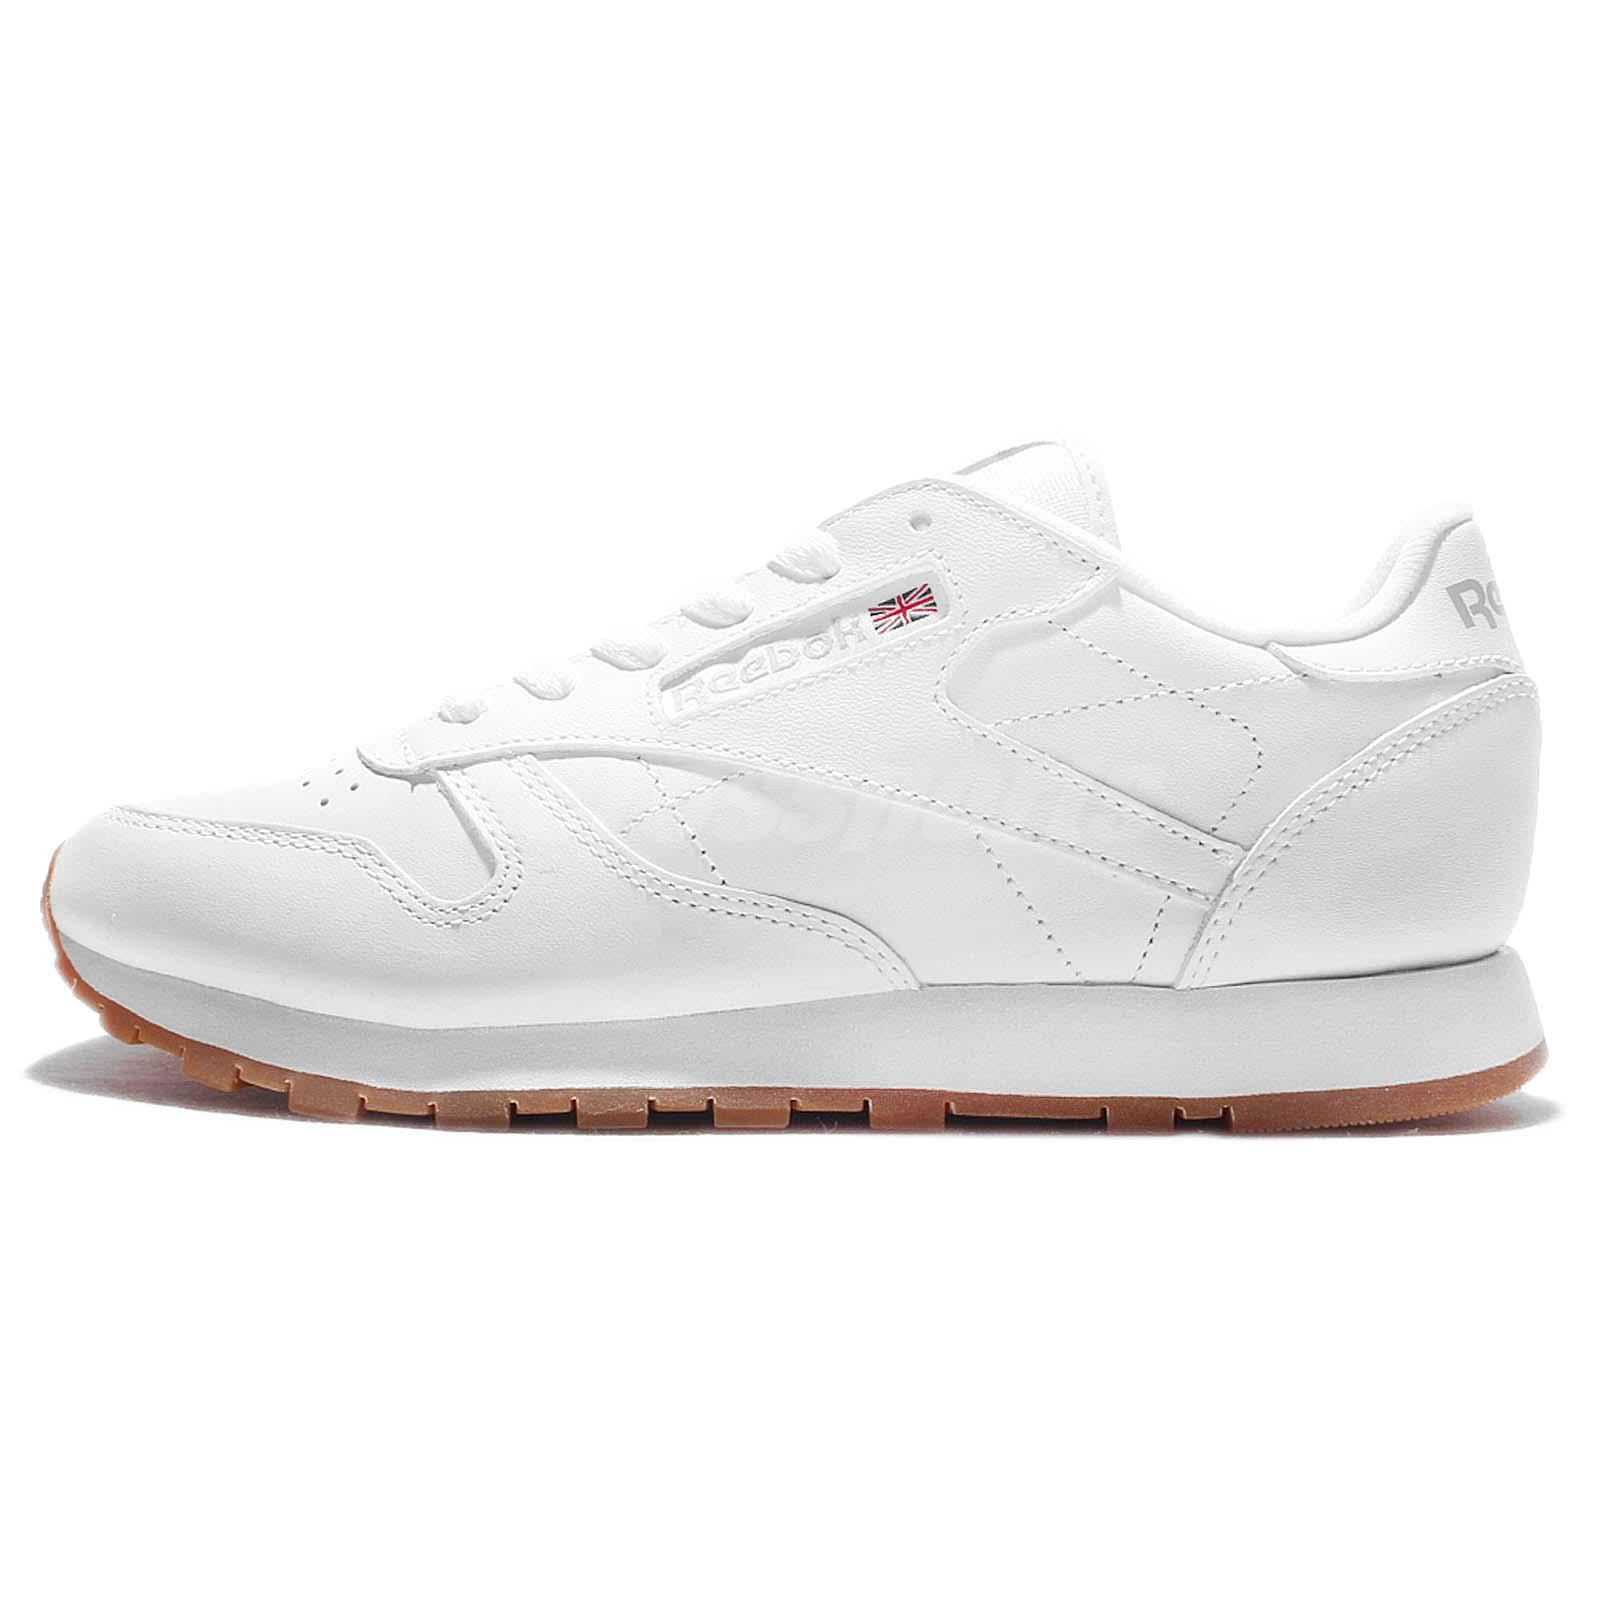 311a78798ca Reebok CL LTHR Classic Leather White Gum Women Casual Shoes Sneakers 49803